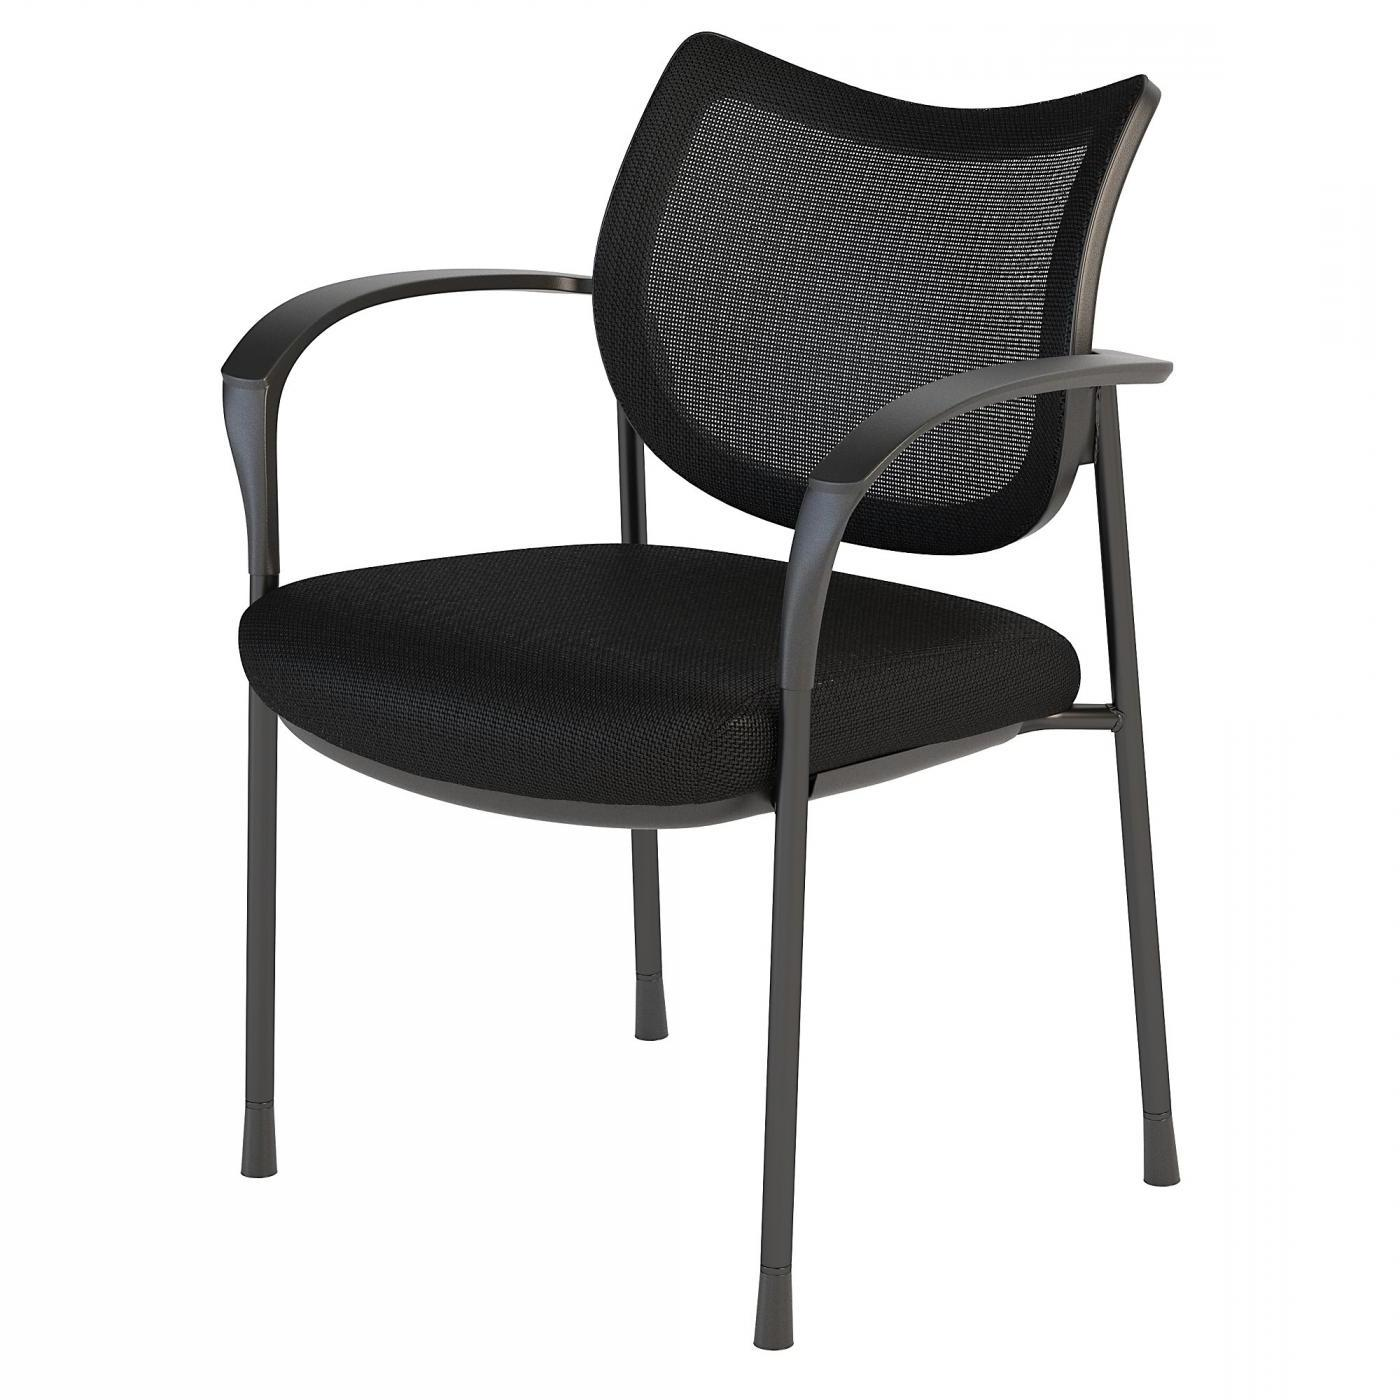 <font color=#c60><b>BUSH BUSINESS FURNITURE CORPORATE MESH BACK GUEST CHAIR. FREE SHIPPING</font></b> </font></b></font></b>